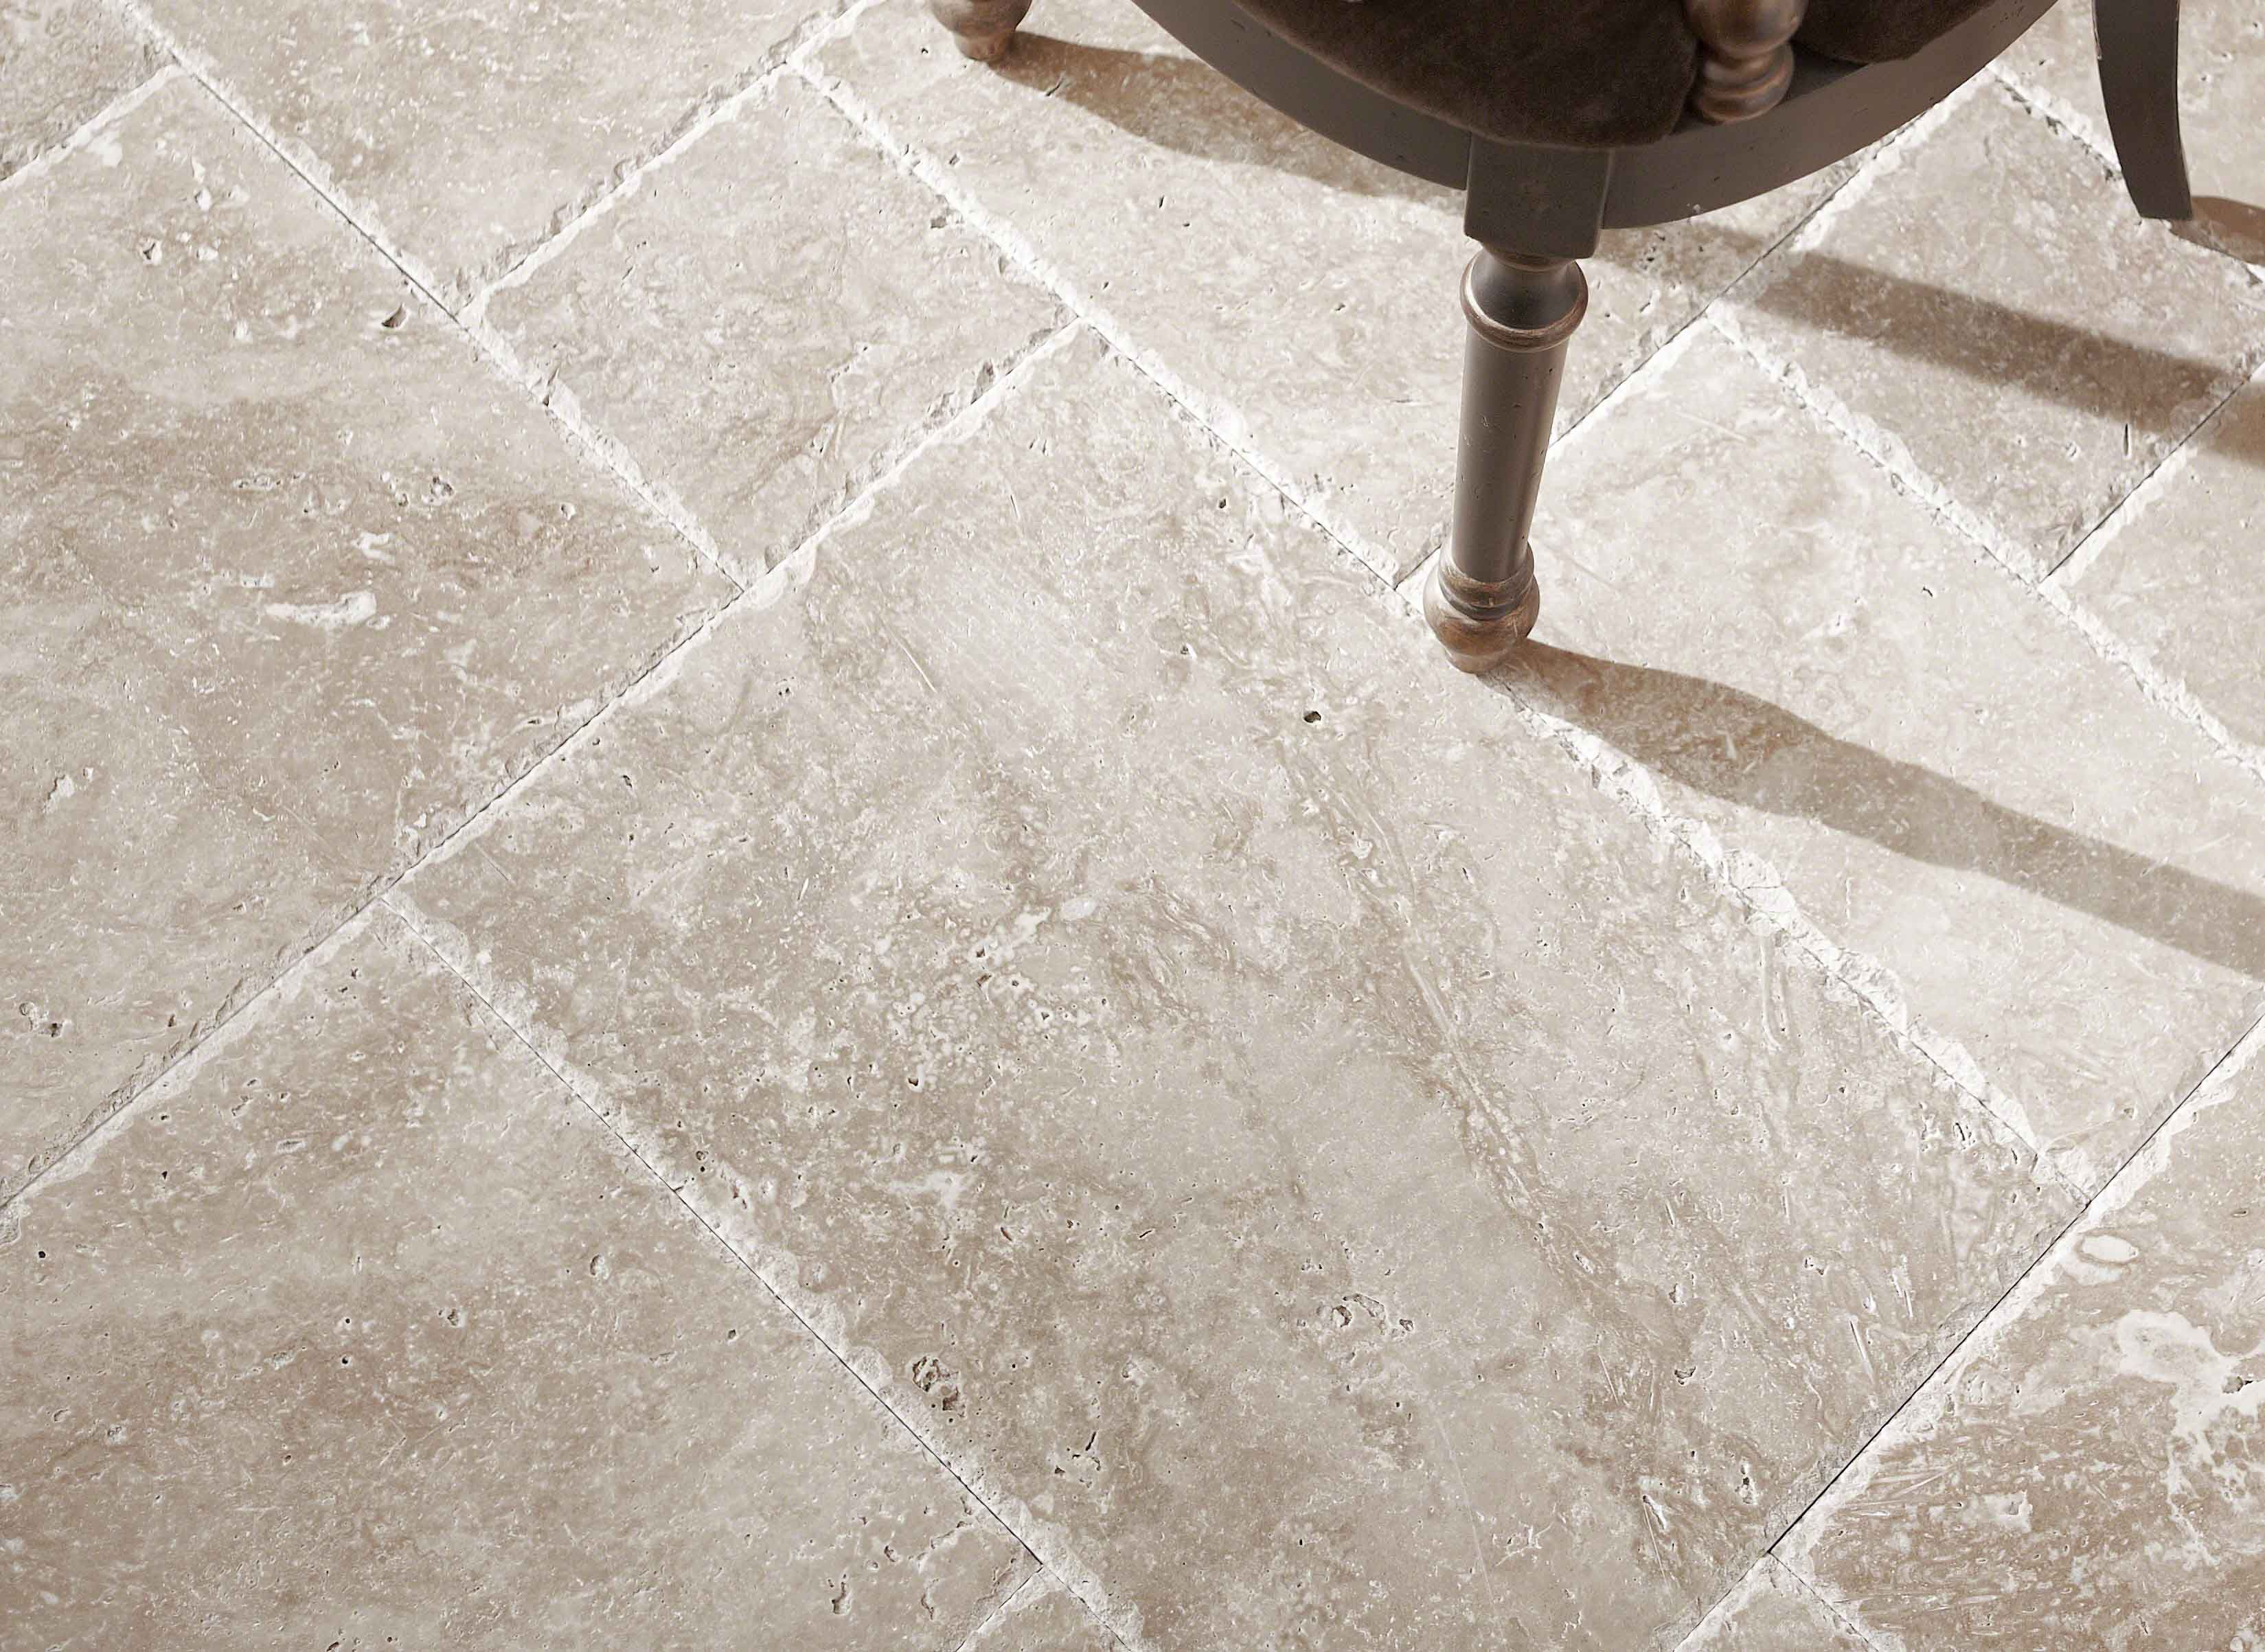 Home Decorating Style 2016 For New Rectified Porcelain Tile That Looks Like Travertine You Can See